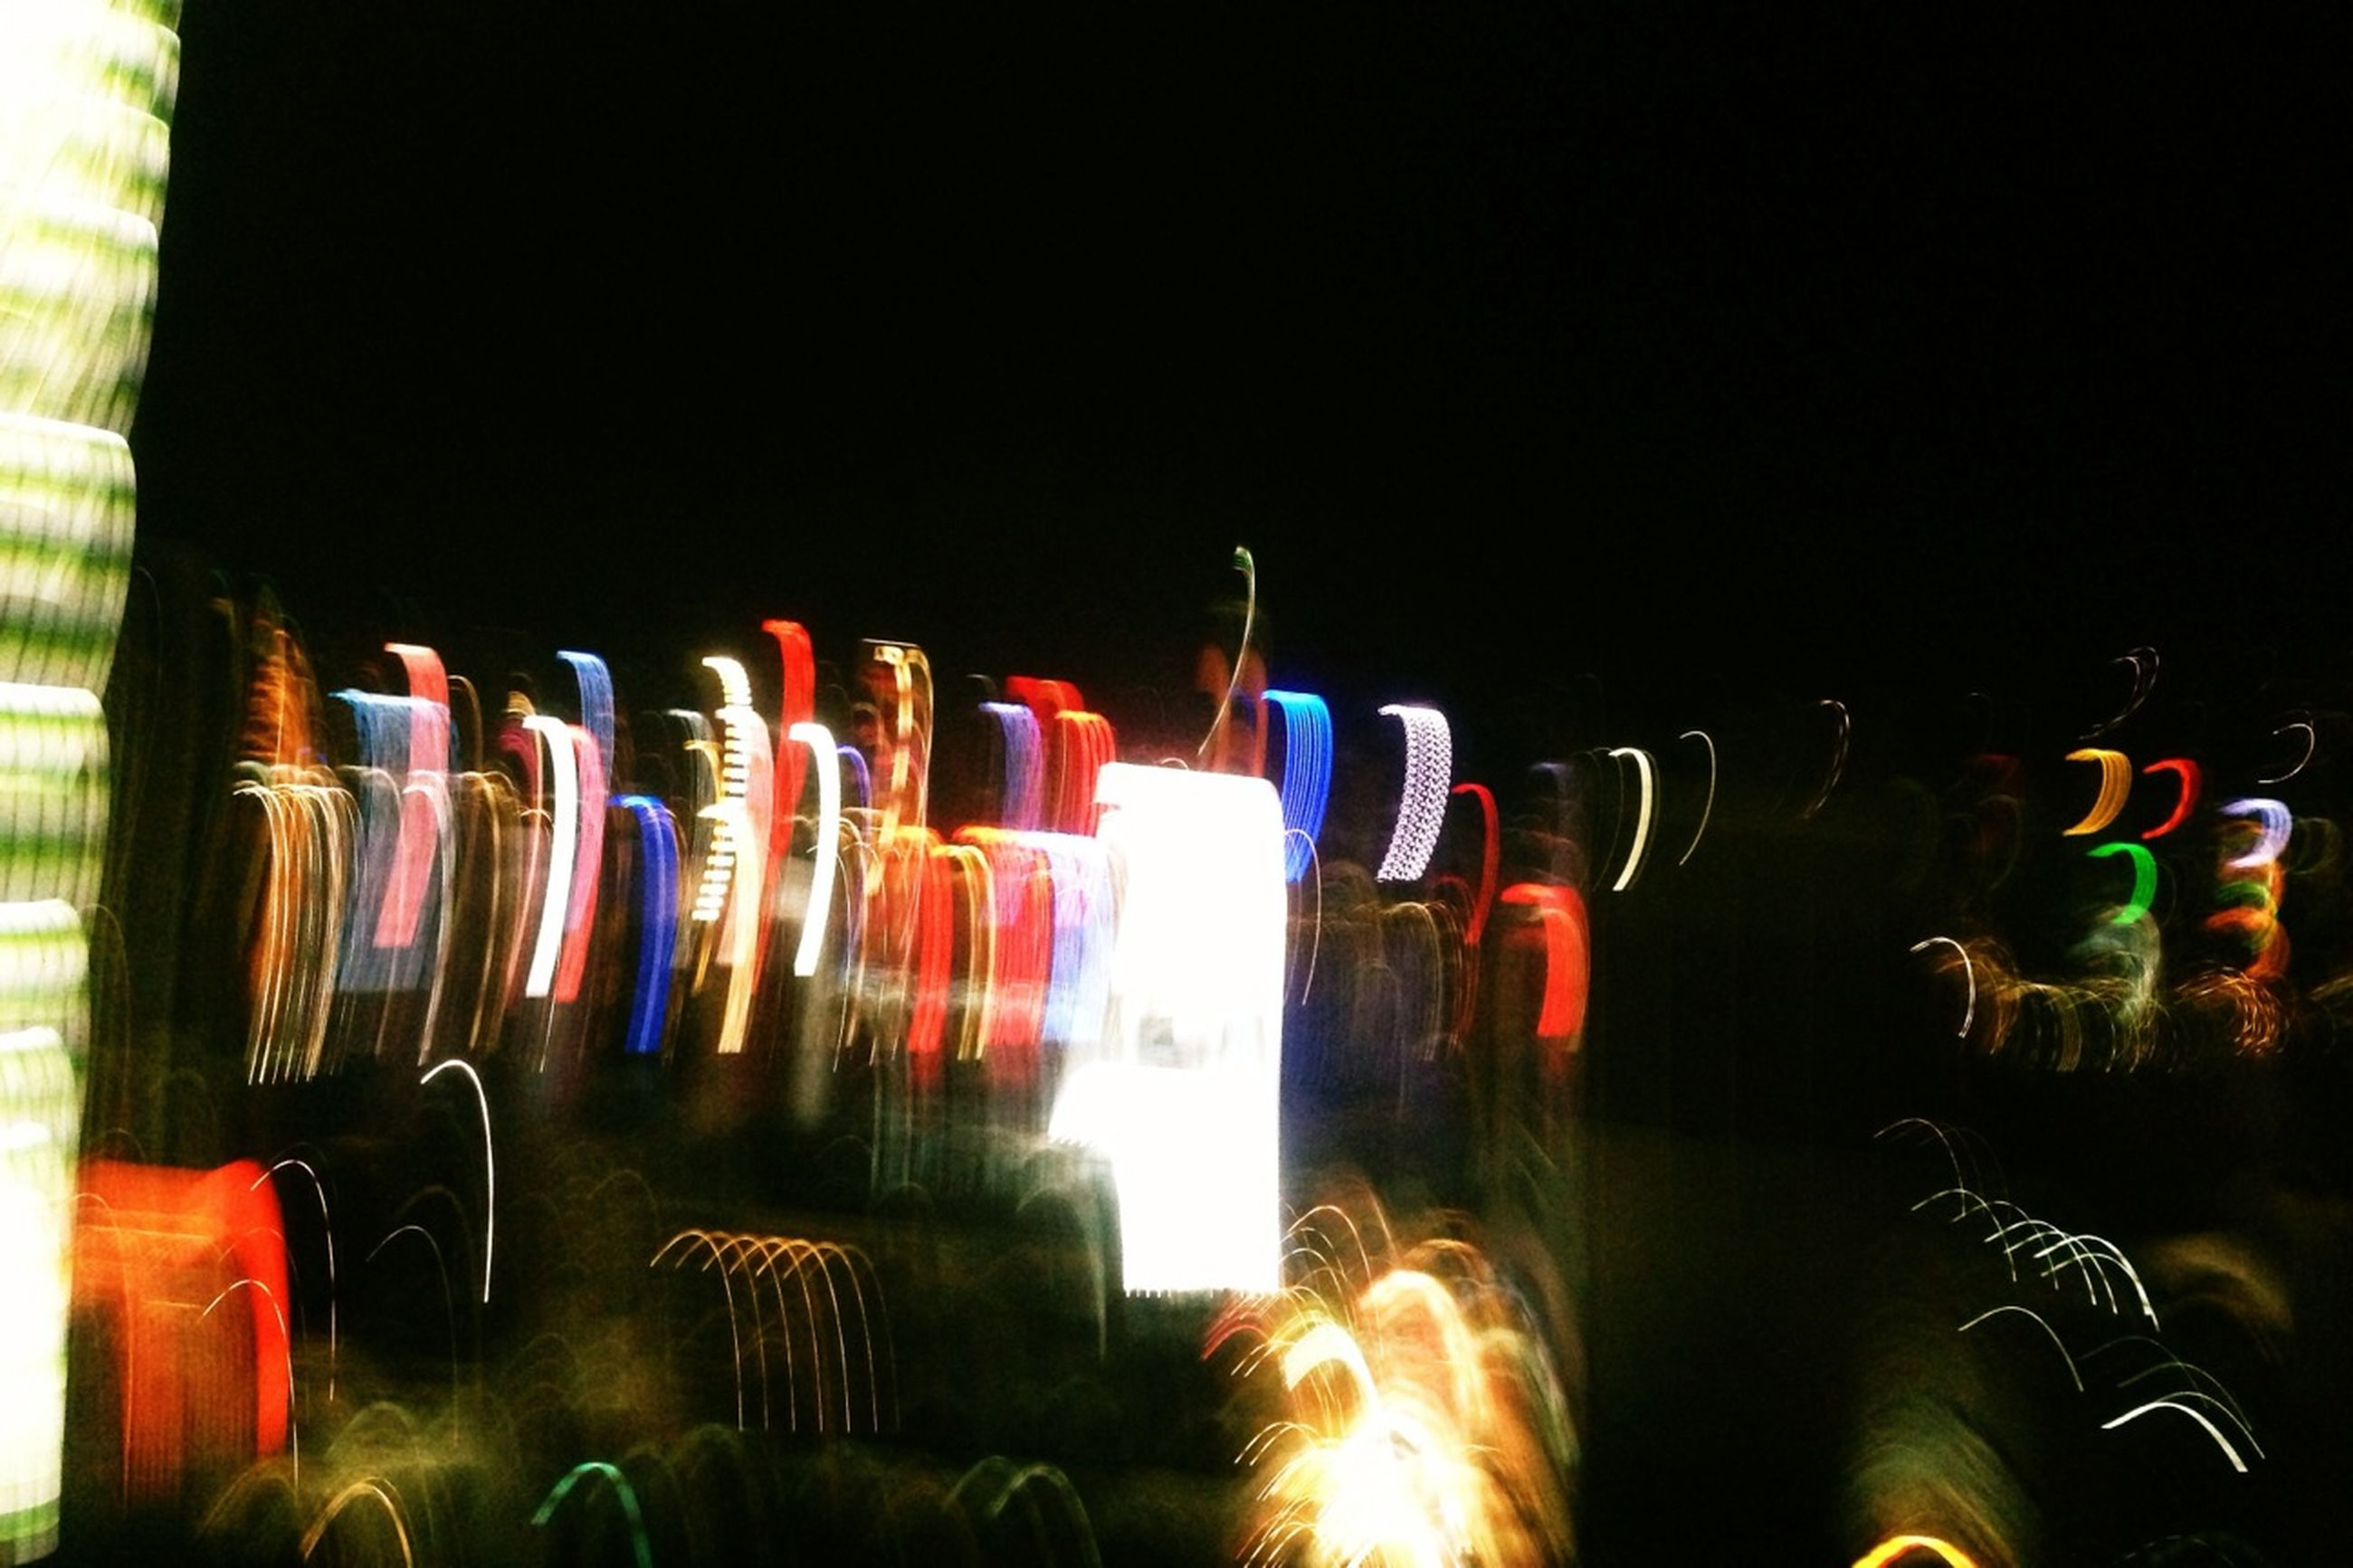 night, illuminated, multi colored, long exposure, reflection, motion, glowing, building exterior, light - natural phenomenon, water, blurred motion, copy space, built structure, burning, no people, fire - natural phenomenon, architecture, outdoors, in a row, arts culture and entertainment